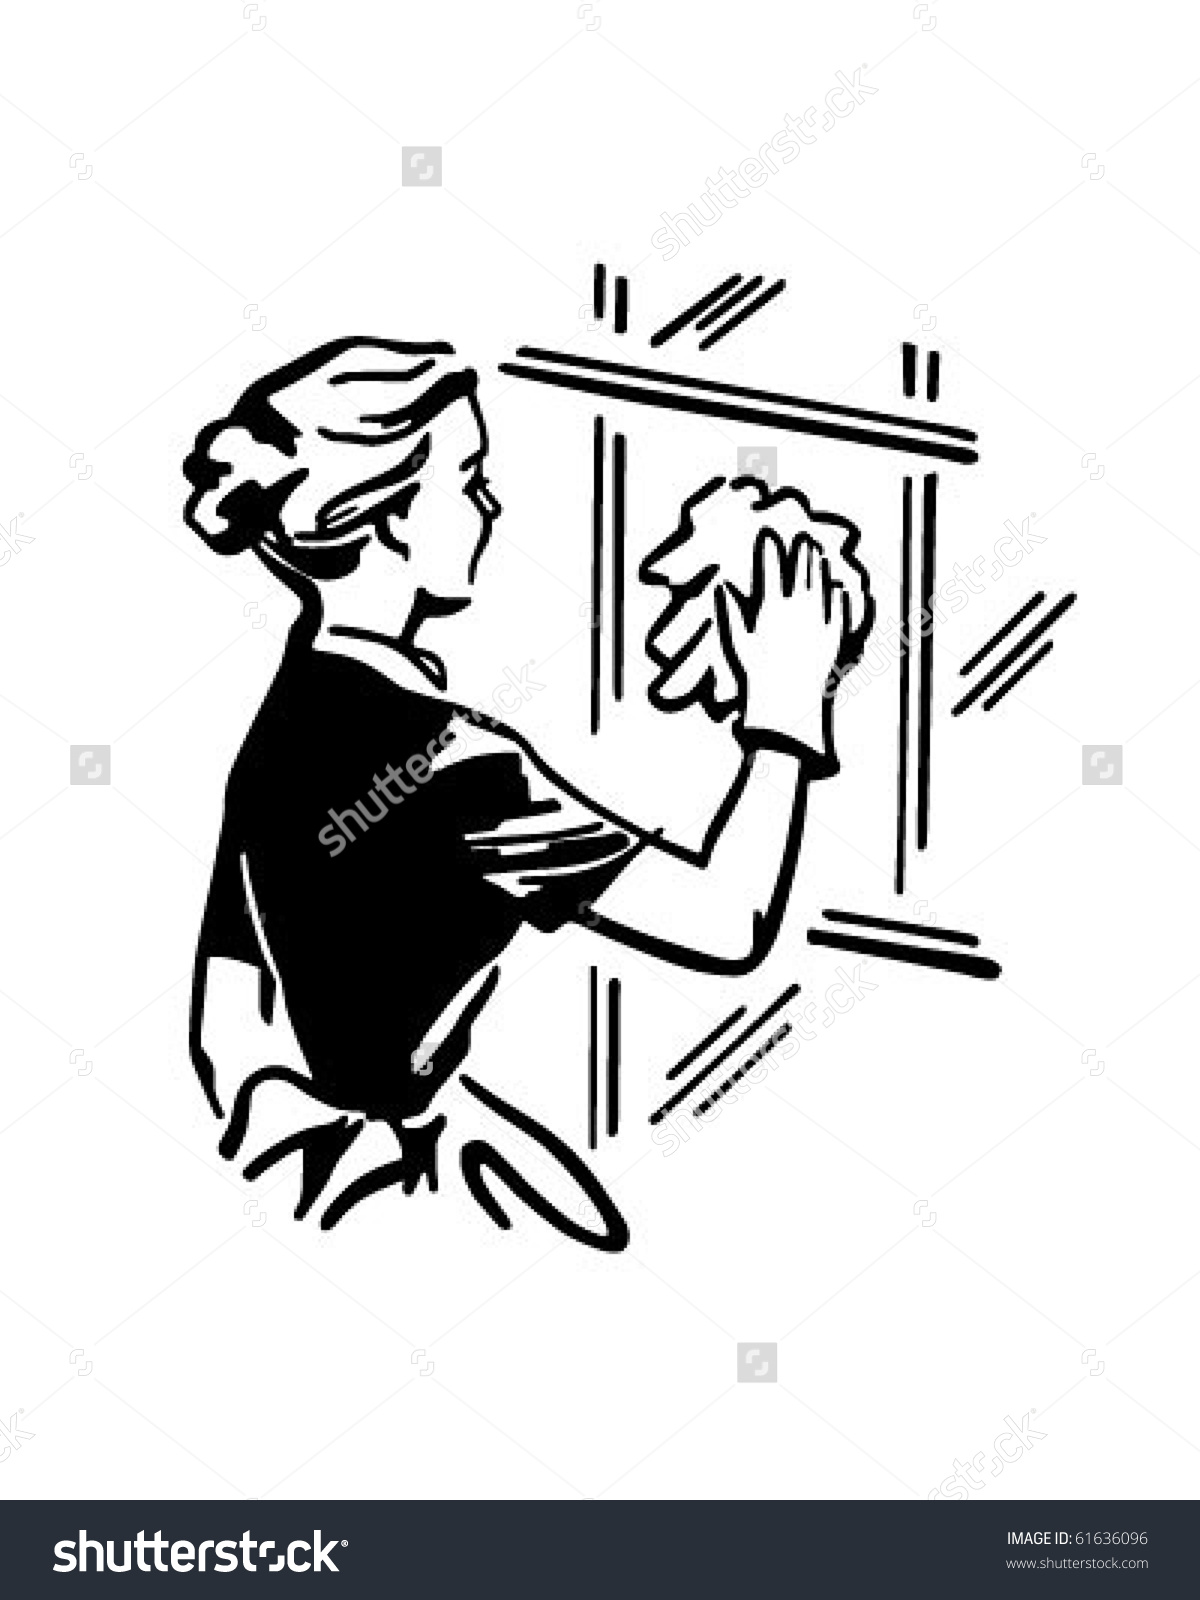 Window washing clipart graphic free library Woman Cleaning Window Retro Clip Art Stock Vector 61636096 ... graphic free library